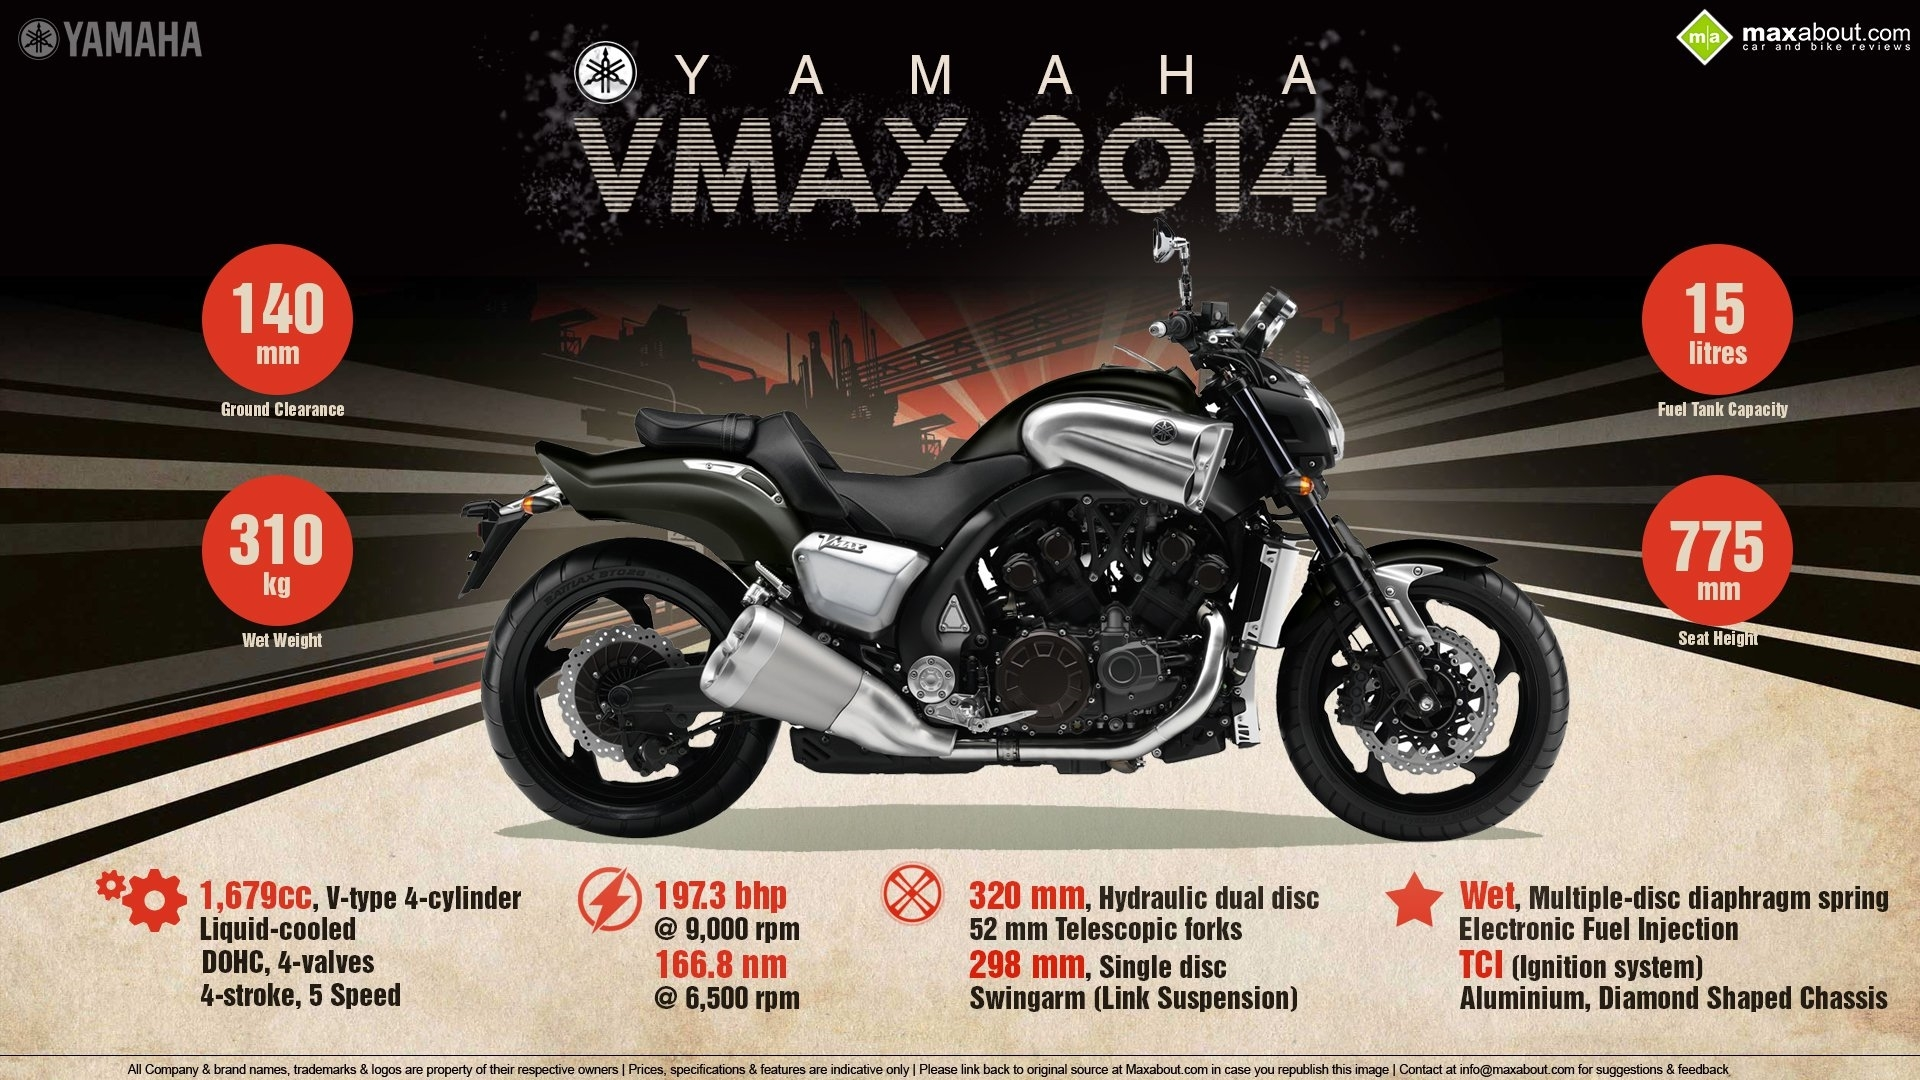 yamaha v max hd photos